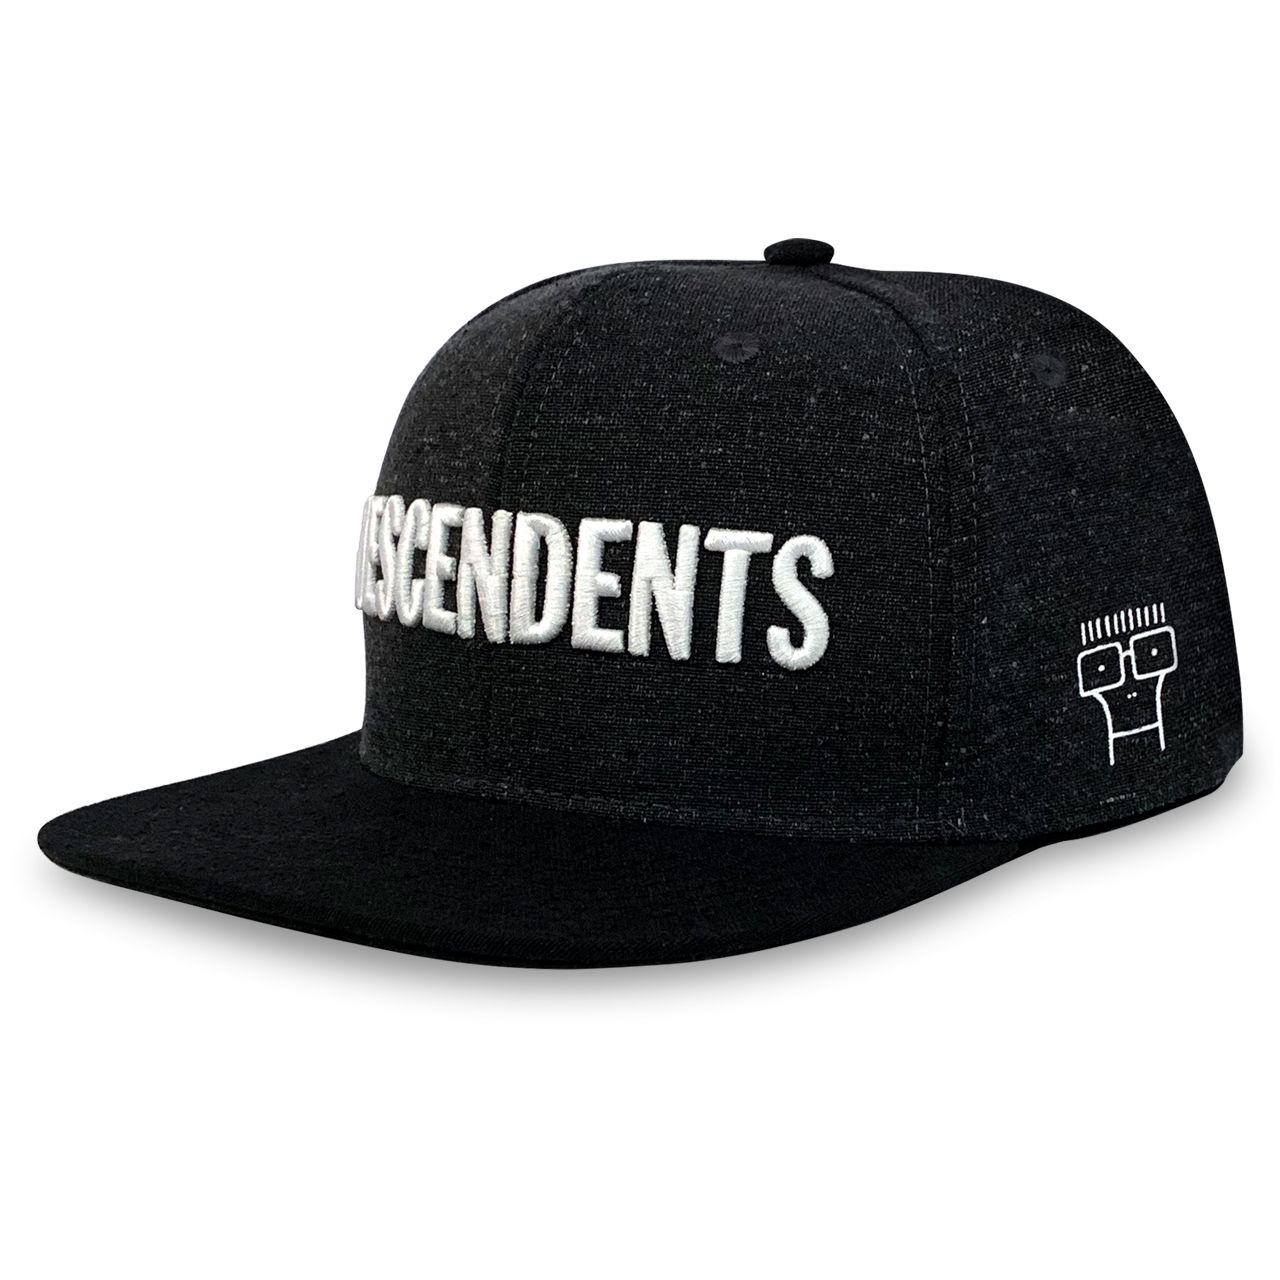 Descendents - Snapback [Boné Aba Reta]